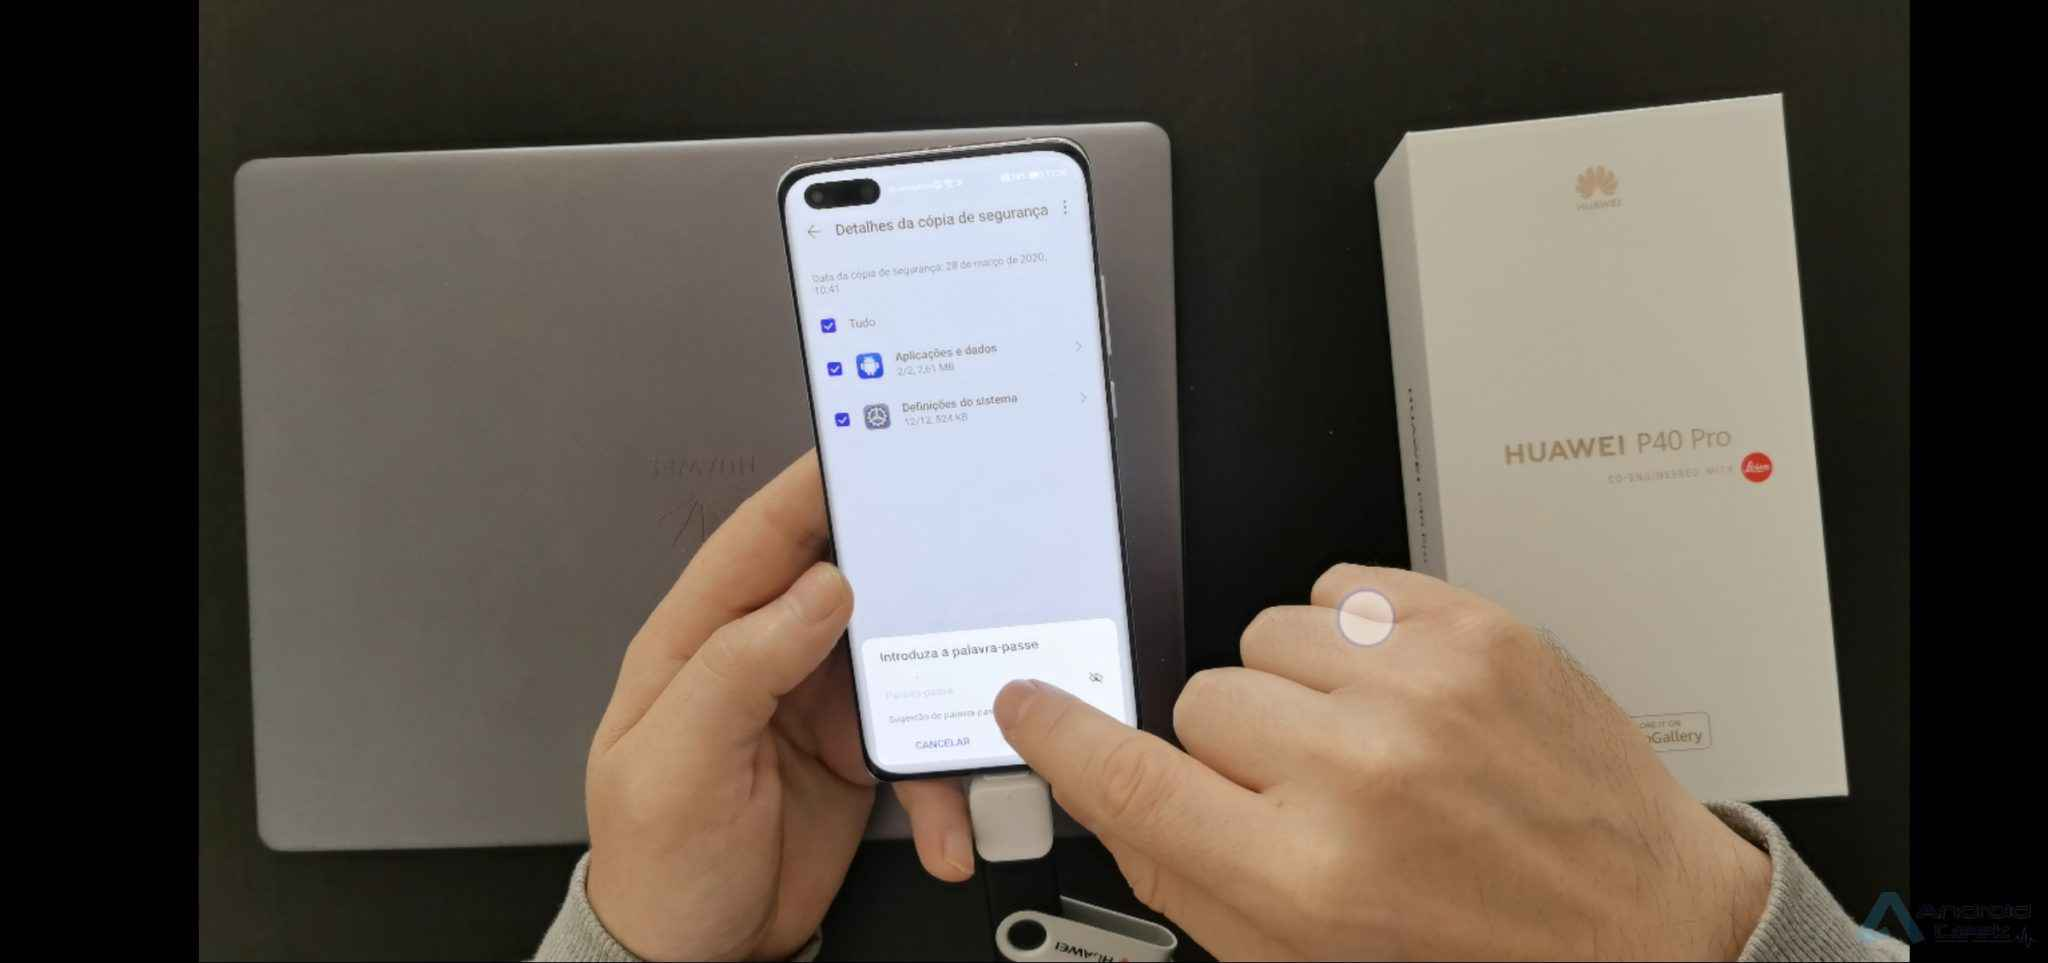 How to add a Google account to Huawei P40 Pro after installing GMS? 2